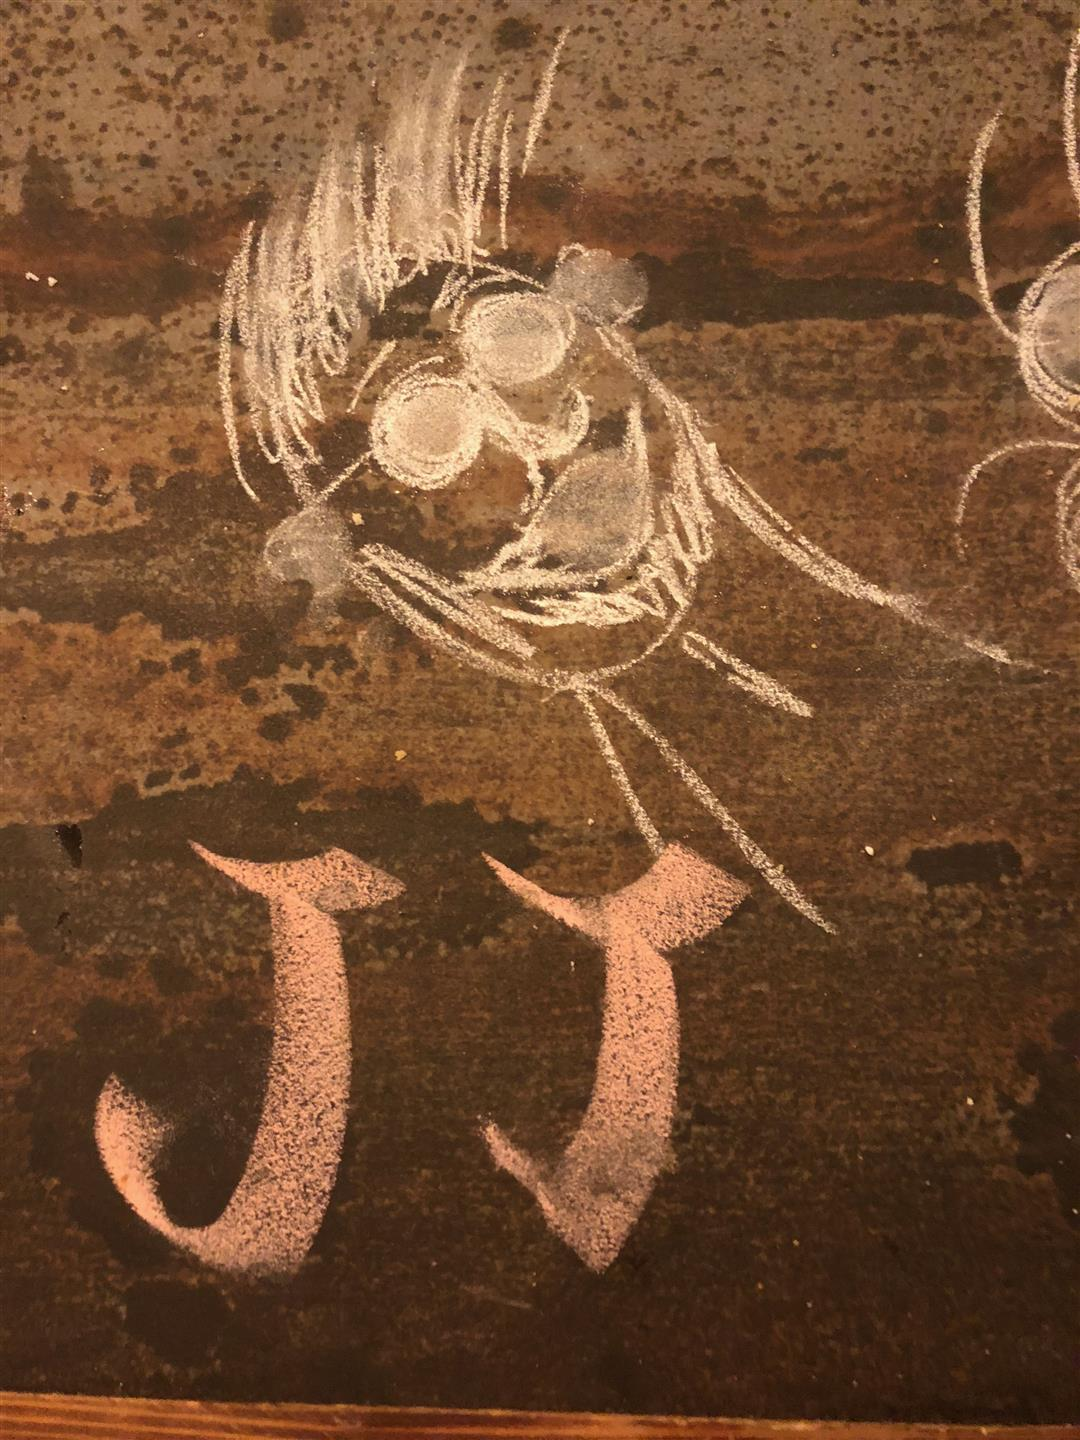 chalk drawing of a man with initials